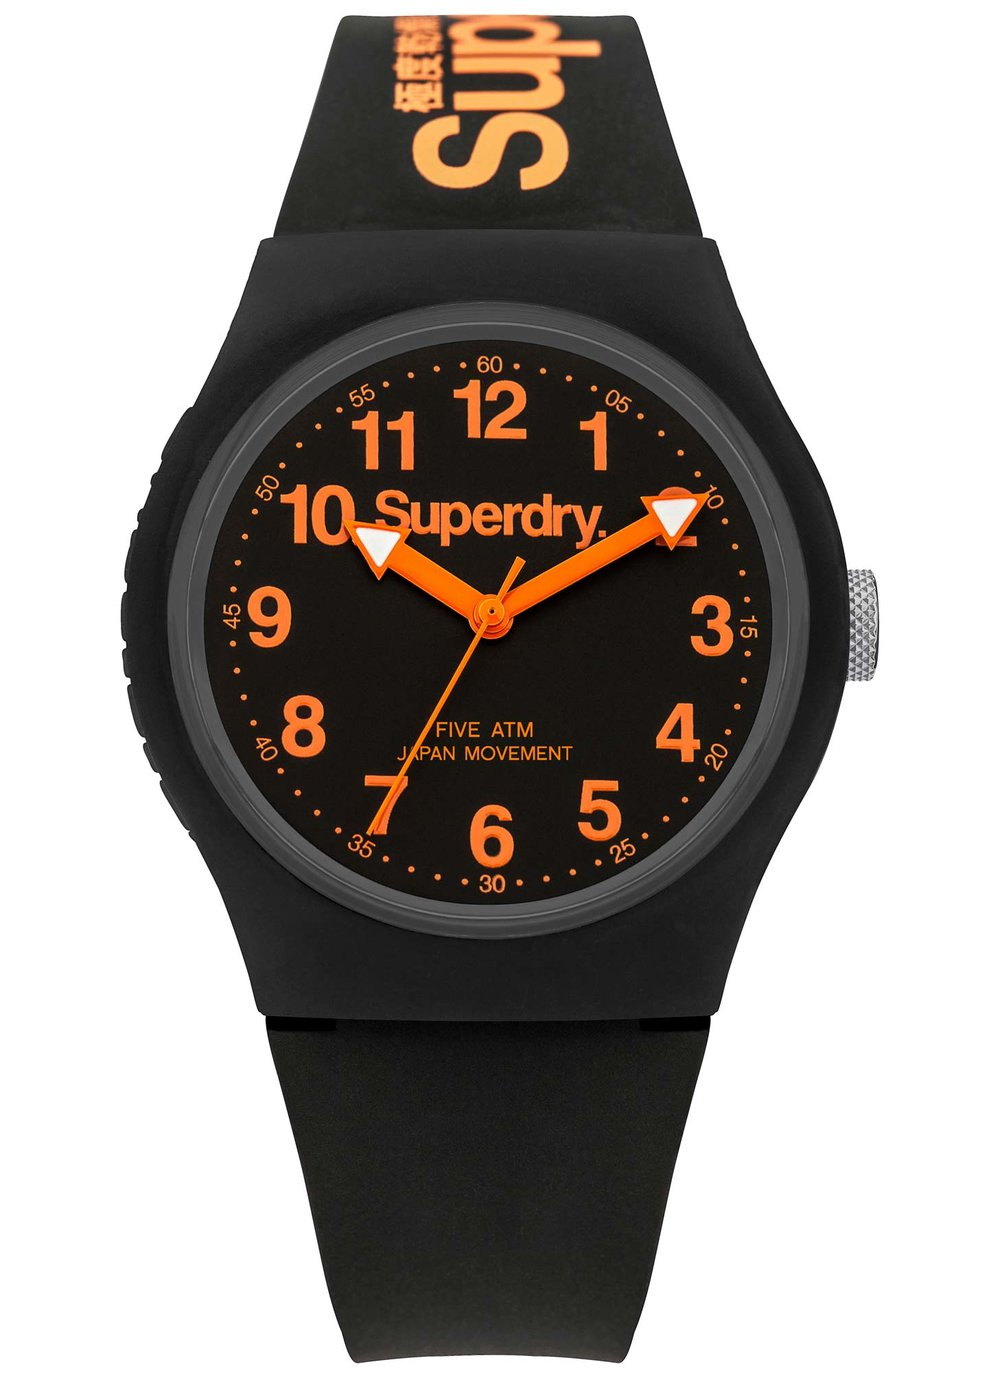 superdry_watches_SDSYG164B.jpg